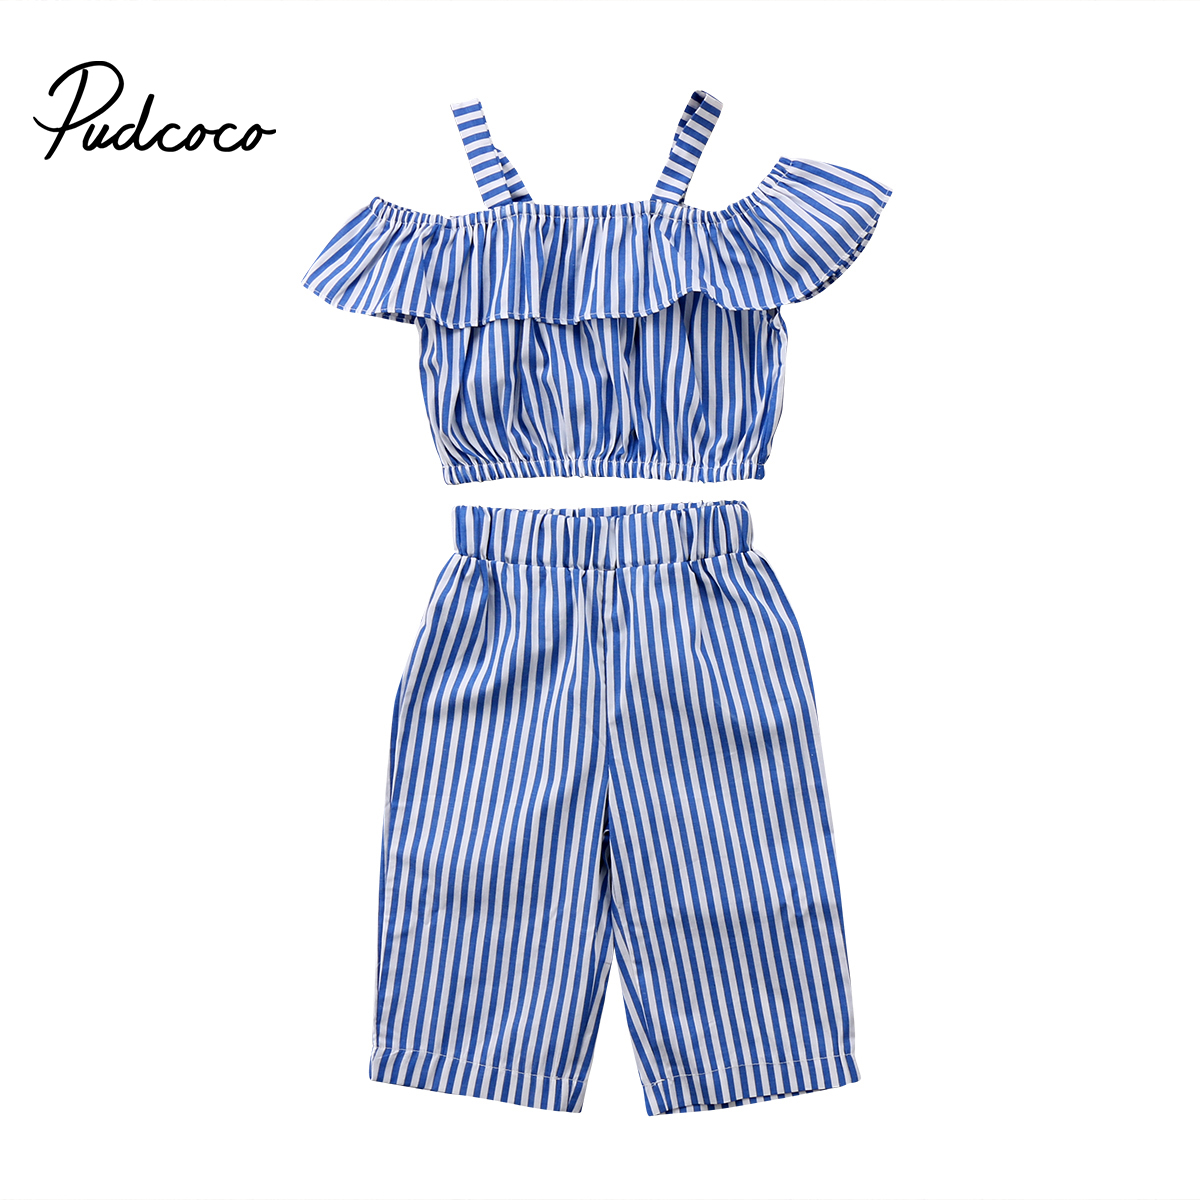 2PCS Toddler Kids Baby Girl Clothes Blue Stripy Tops+Shorts Outfit Clothes Sweet